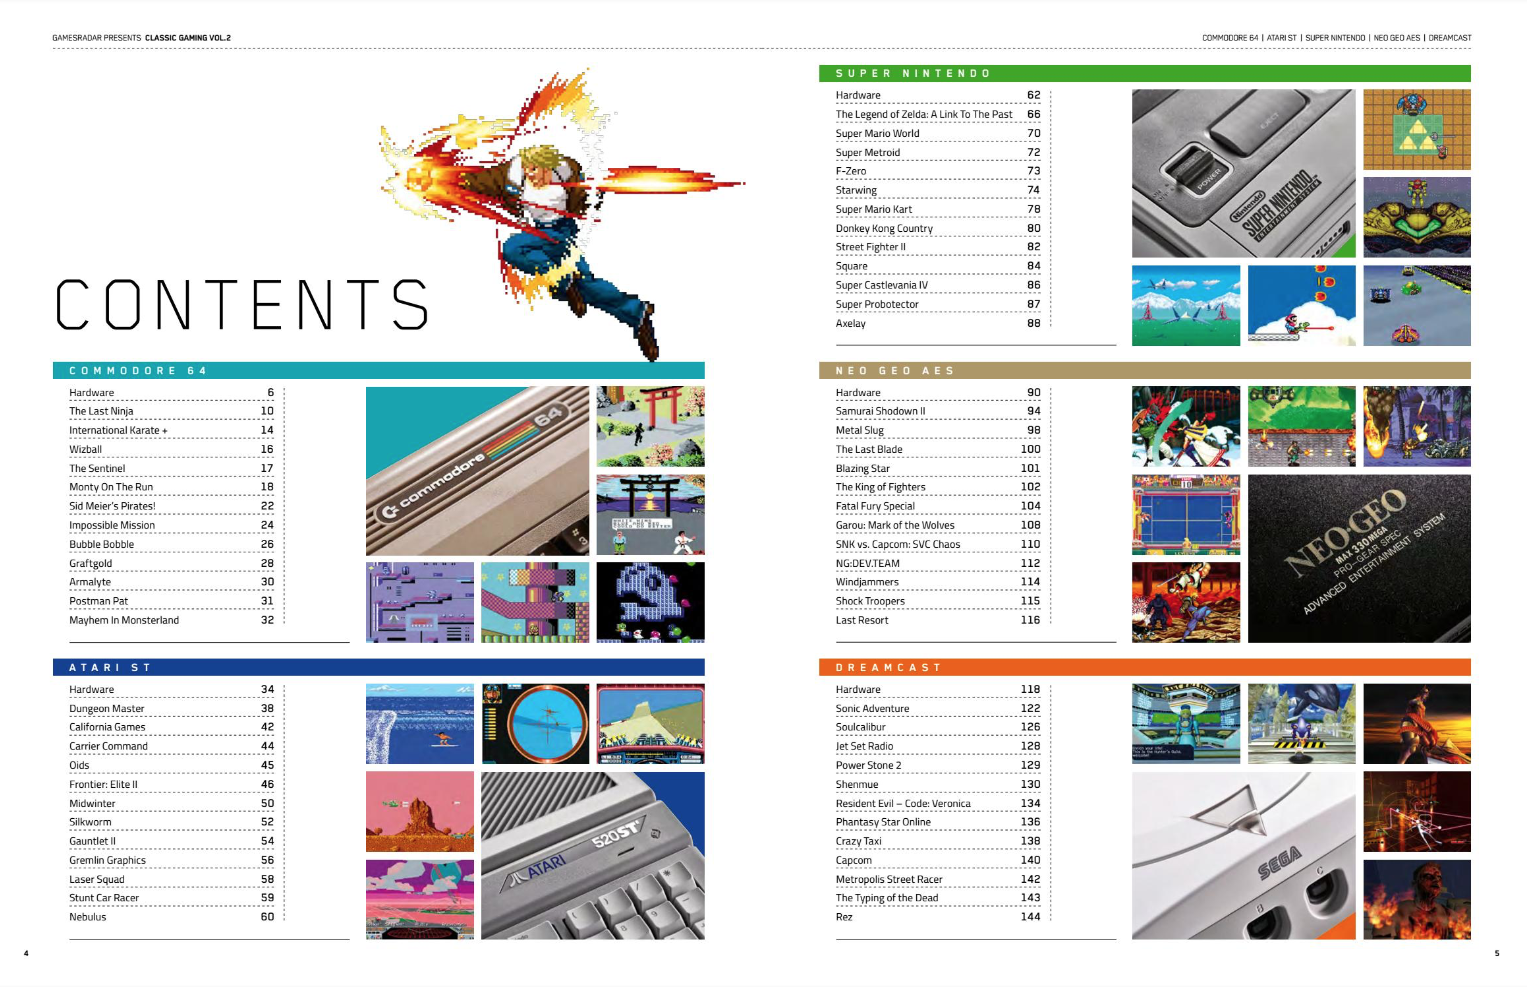 The Dreamcast Junkyard: Classic Gaming Volume 2 Features The Dreamcast